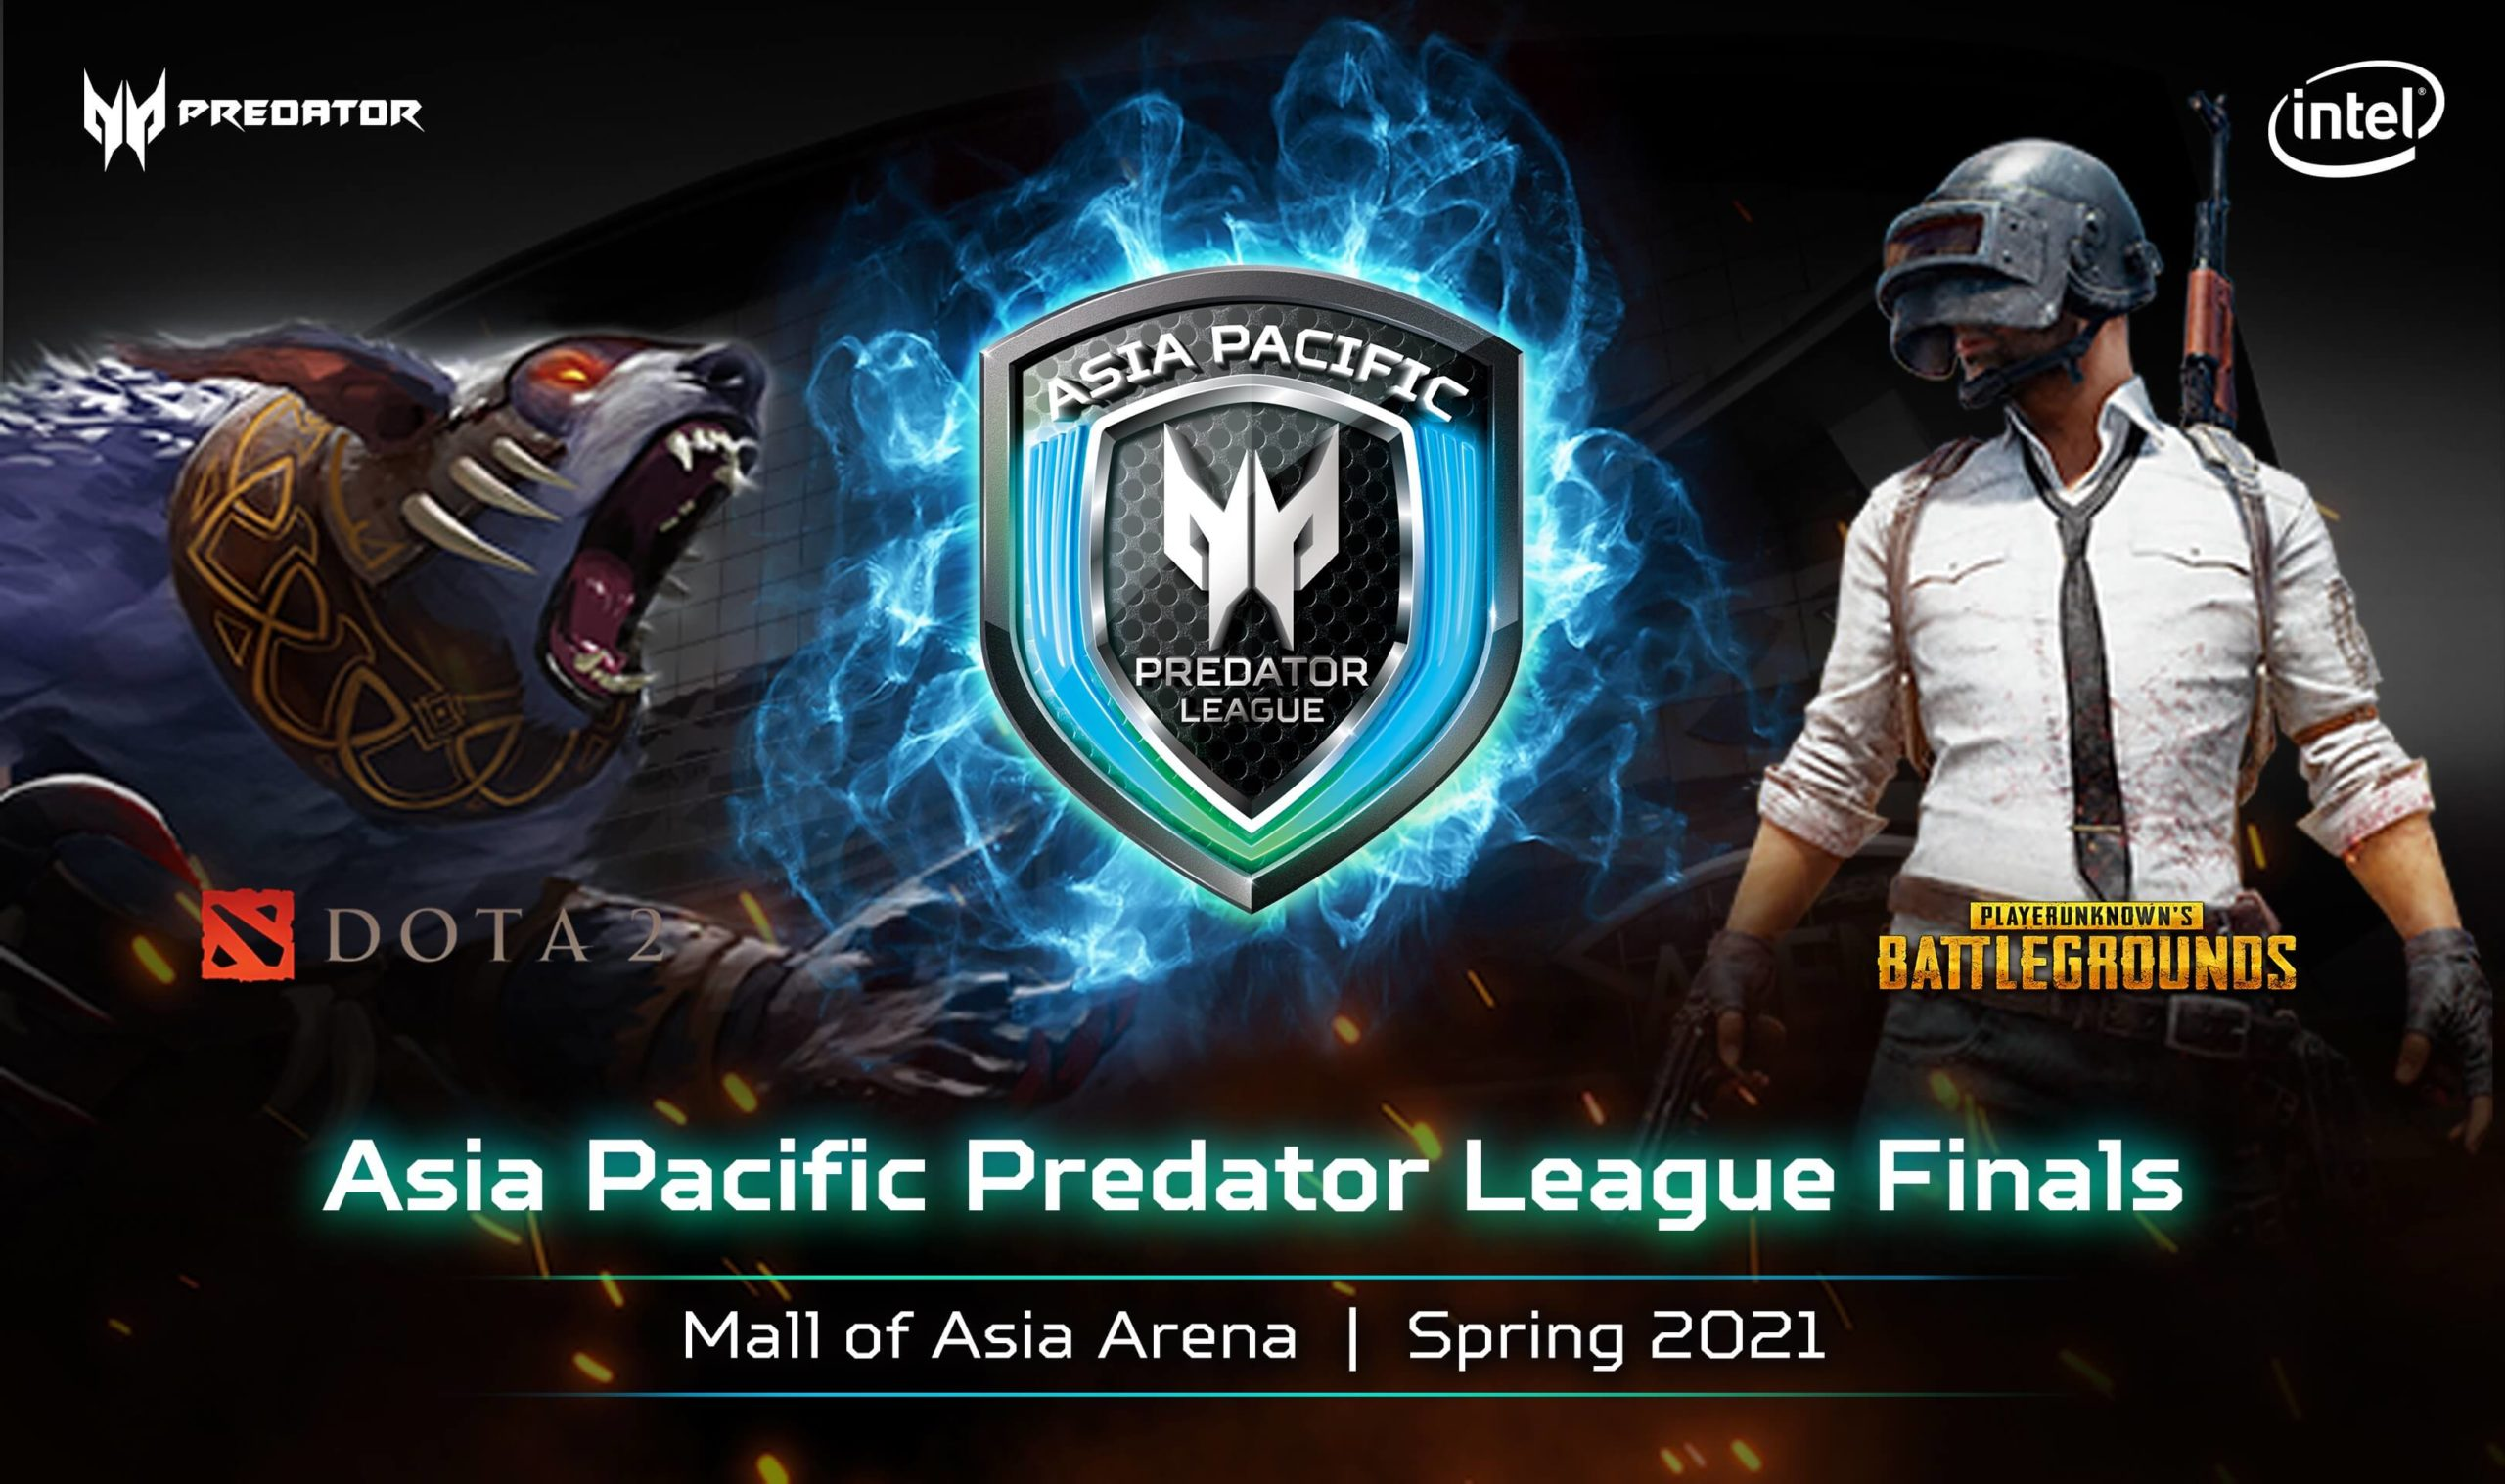 APAC Predator League 2020 moved to Spring 2021